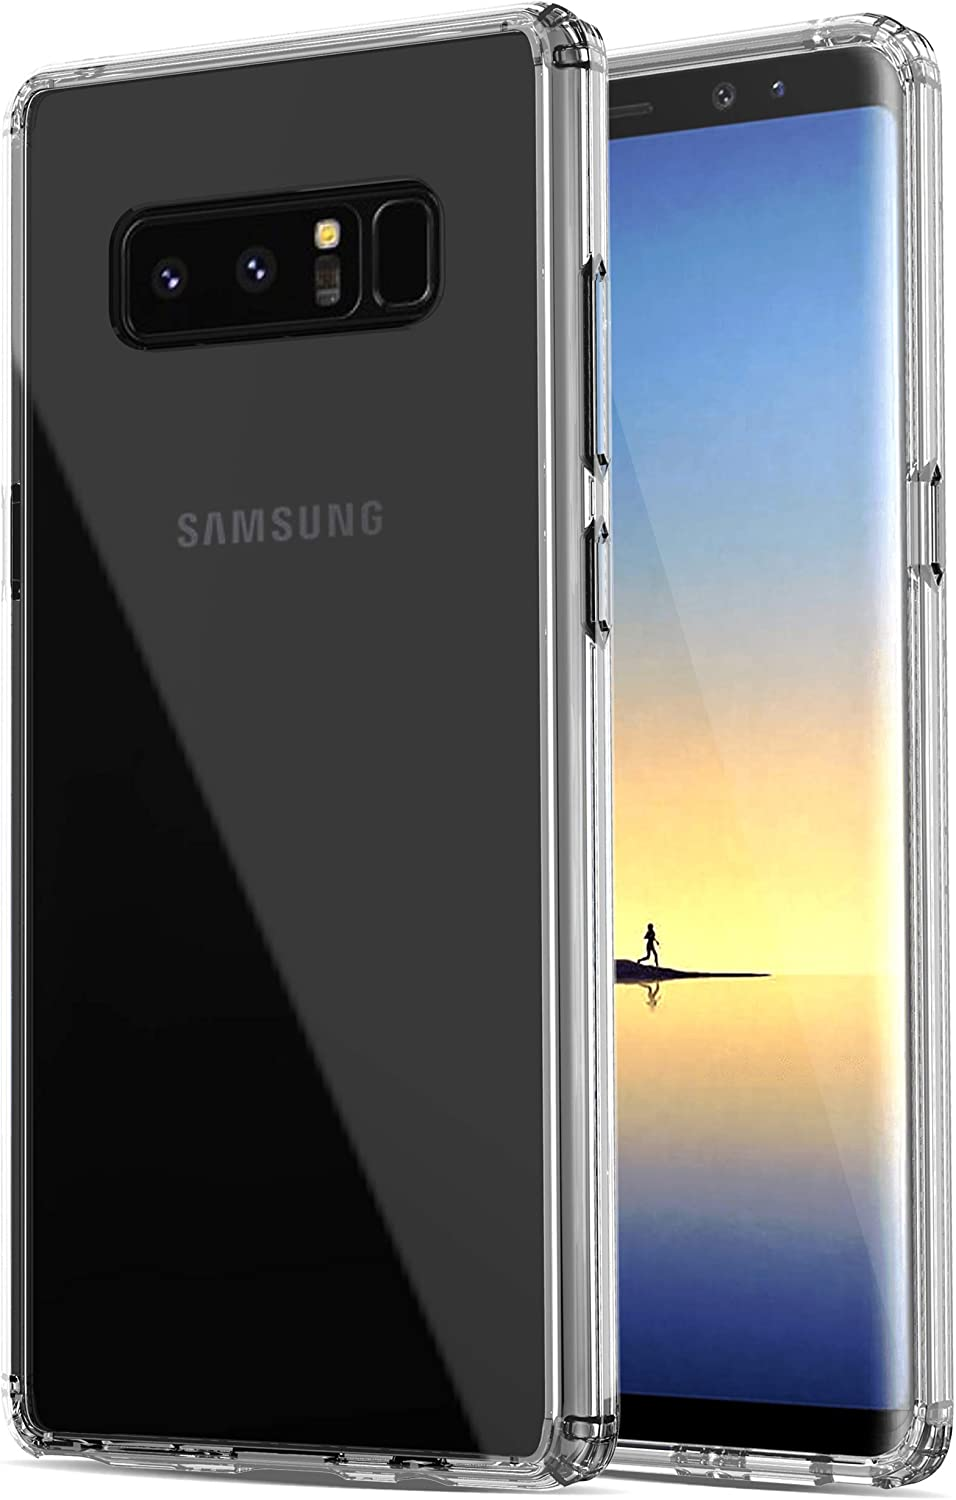 RANZ Galaxy Note 8 Case, Anti-Scratch Shockproof Series Clear Hard PC + TPU Bumper Protective Cover Case for Samsung Galaxy Note 8 - Crystal Clear